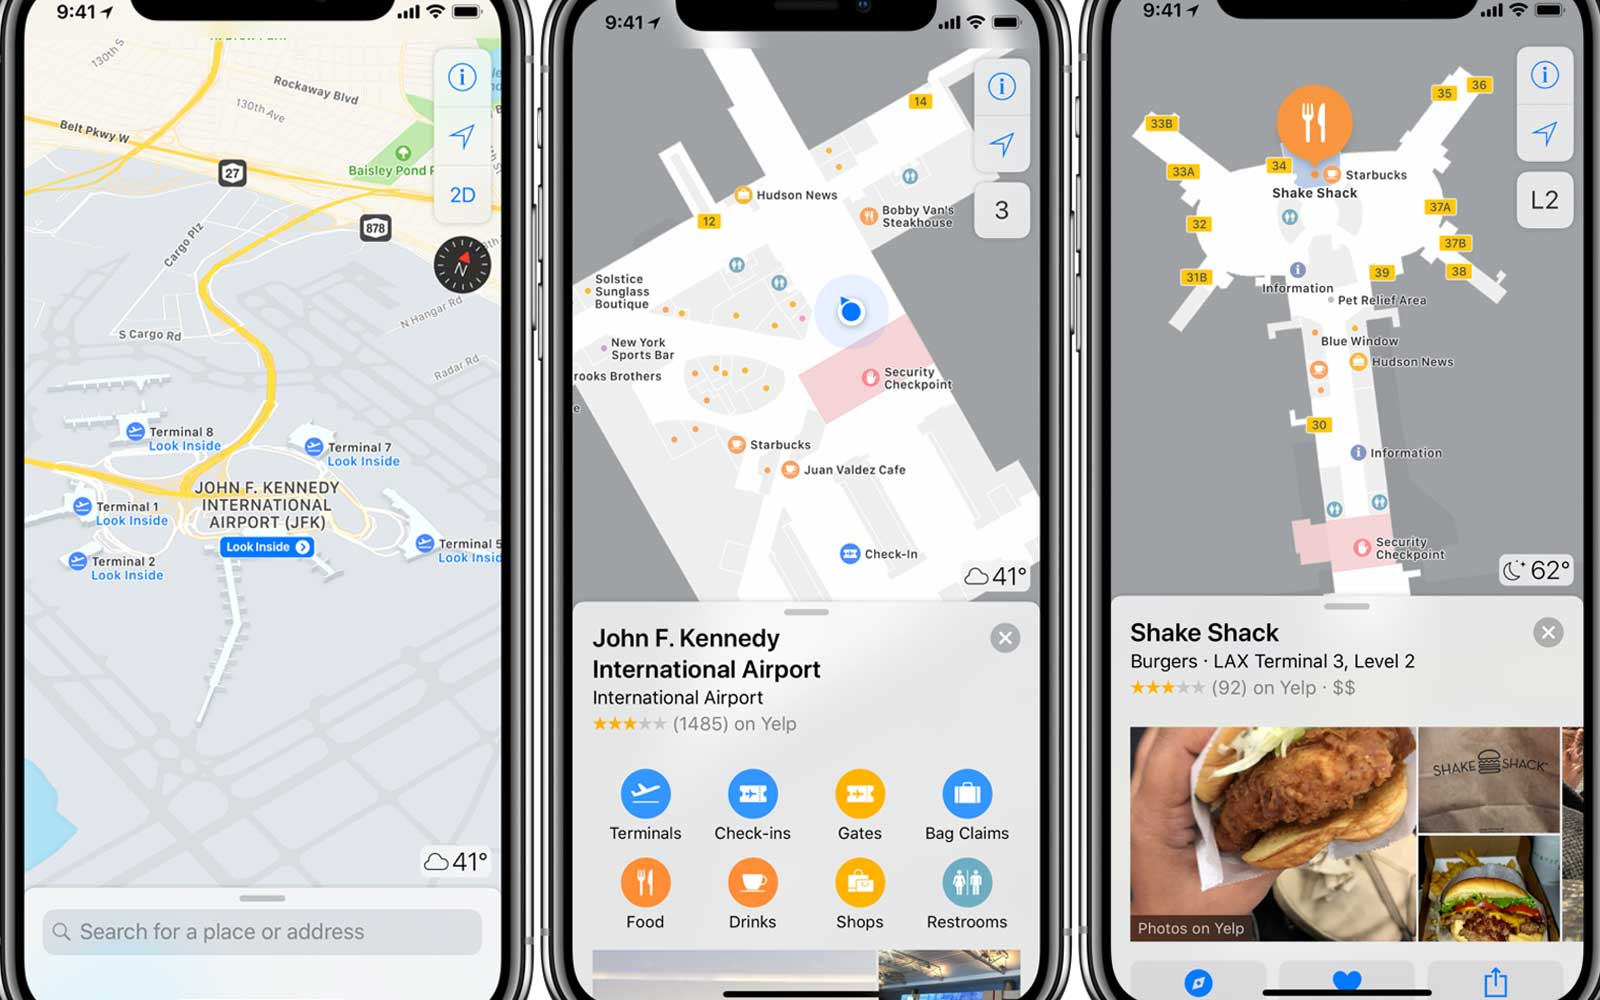 Apple Maps updates for airports